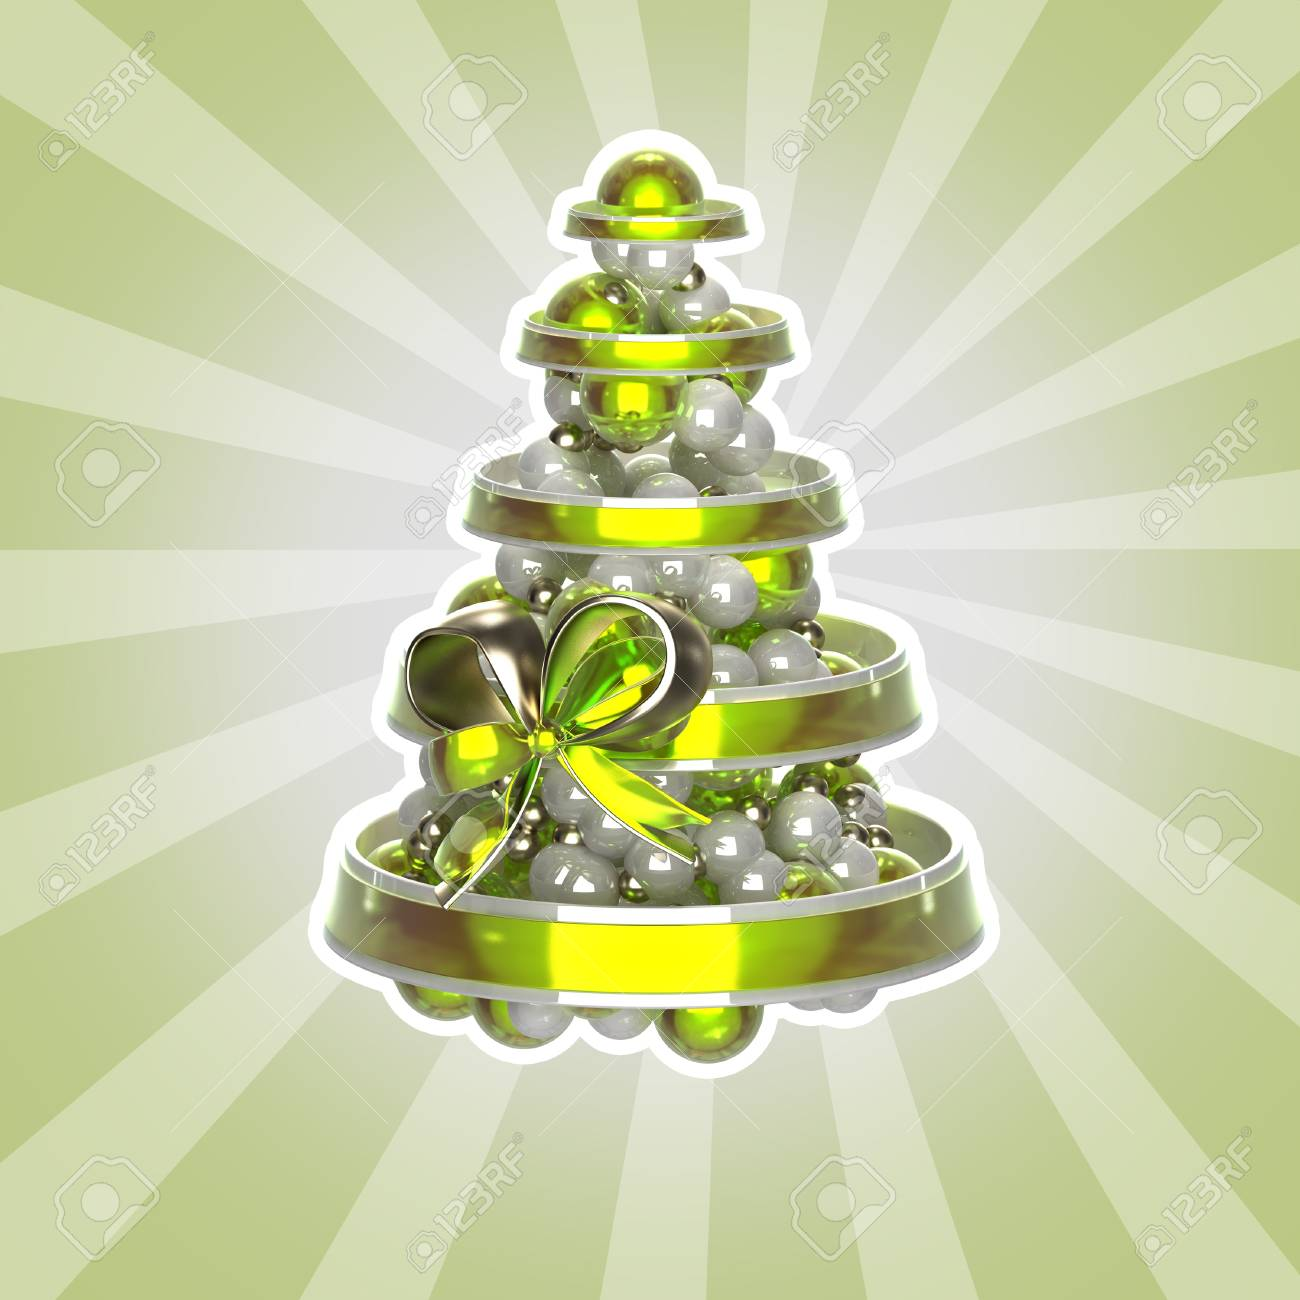 Shiny Christmas Tree Made Of Balls And Ribbons Isolated With A White Stroke Stock Photo